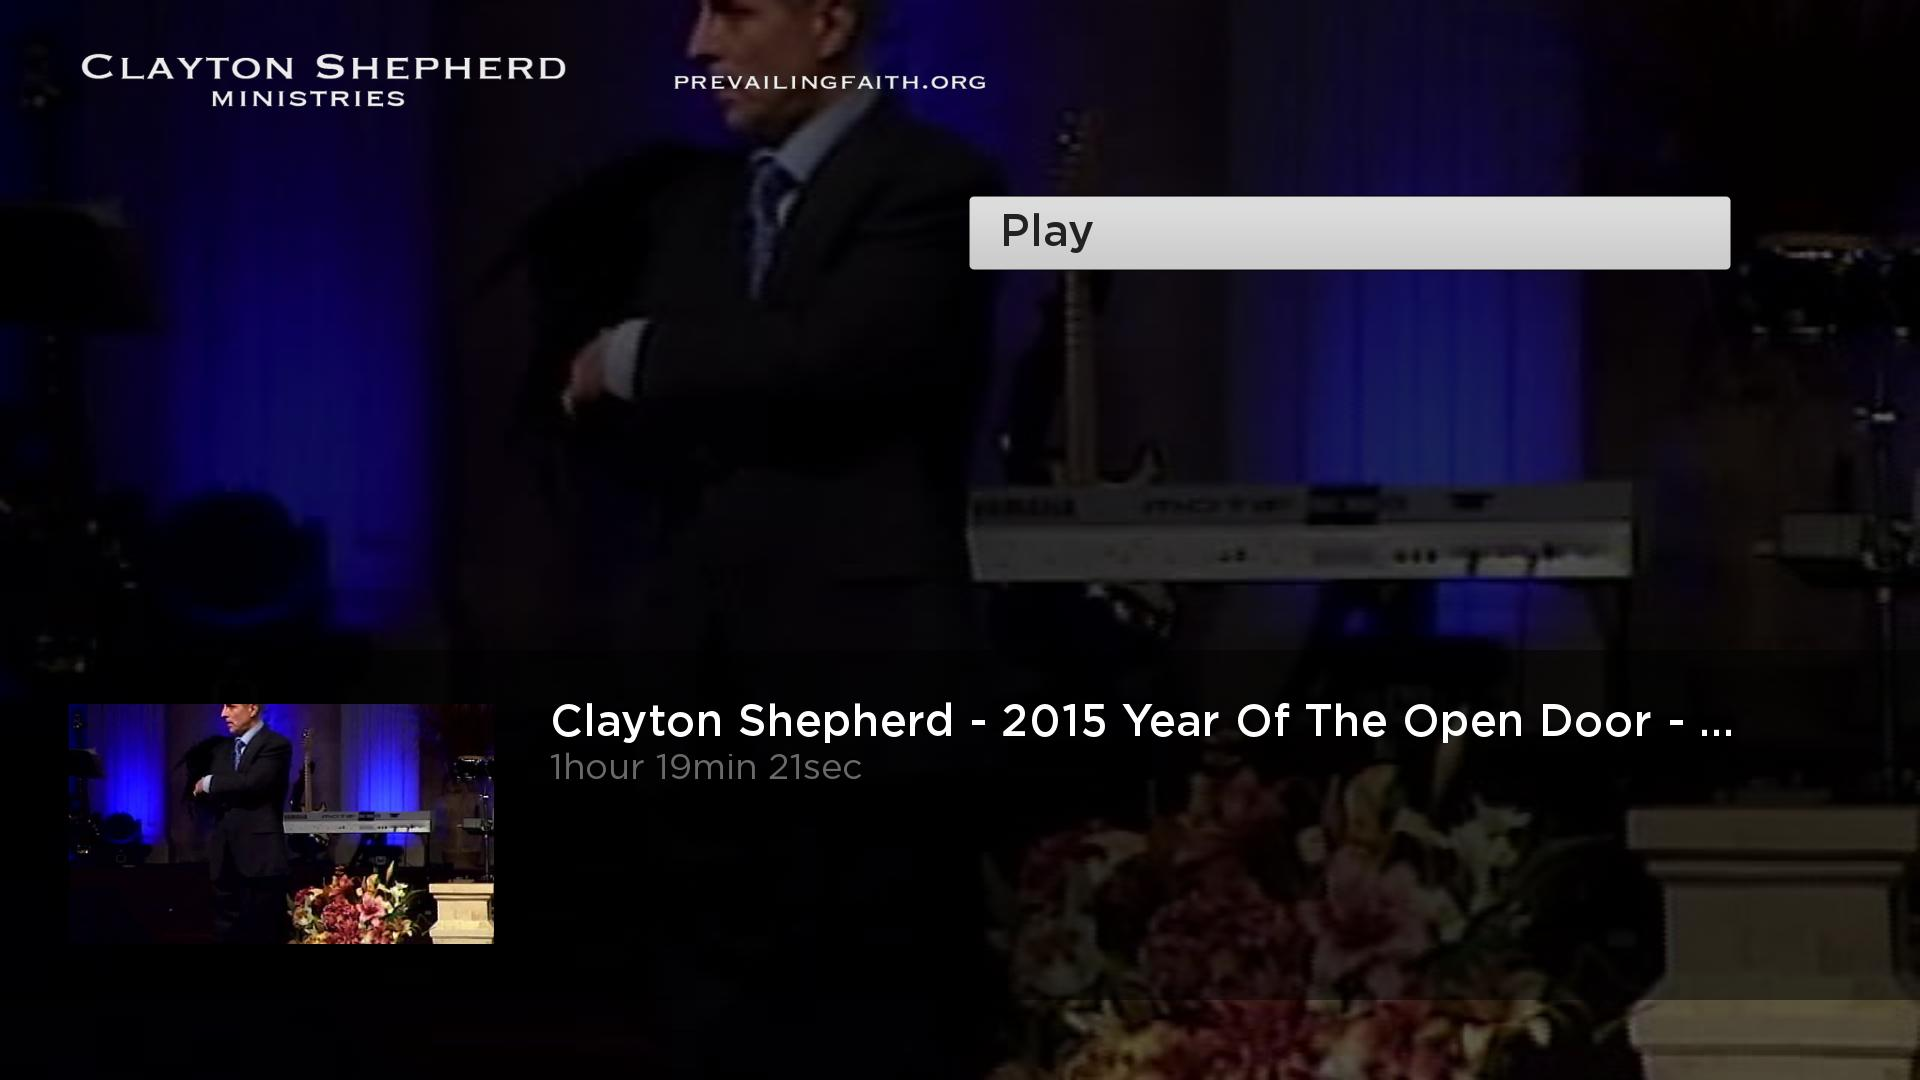 Clayton Shepherd Ministries Screenshot 003